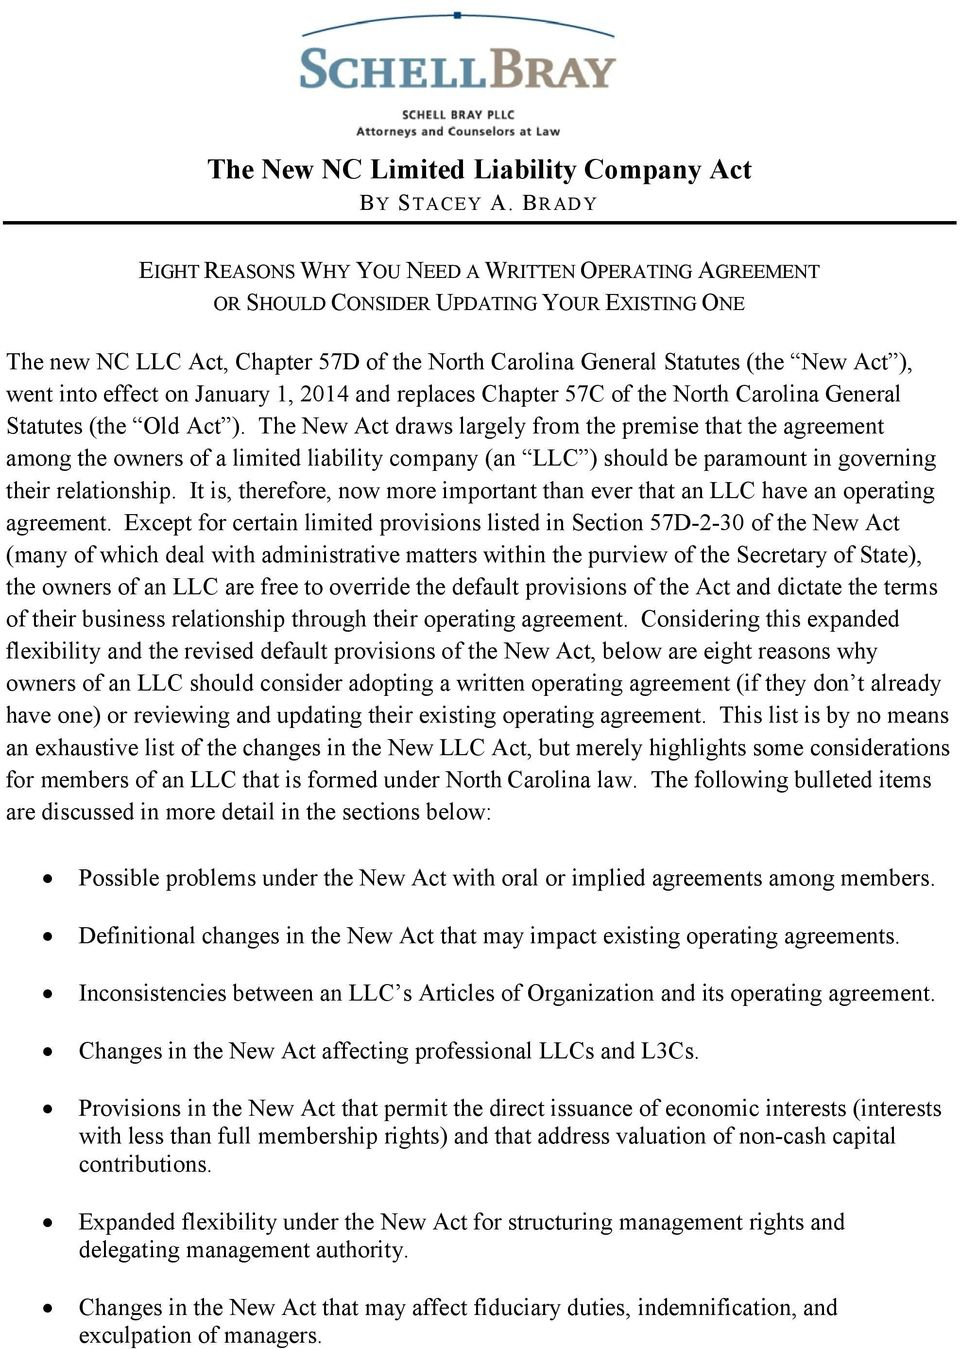 The New Nc Limited Liability Company Act By Stacey A Brady Pdf